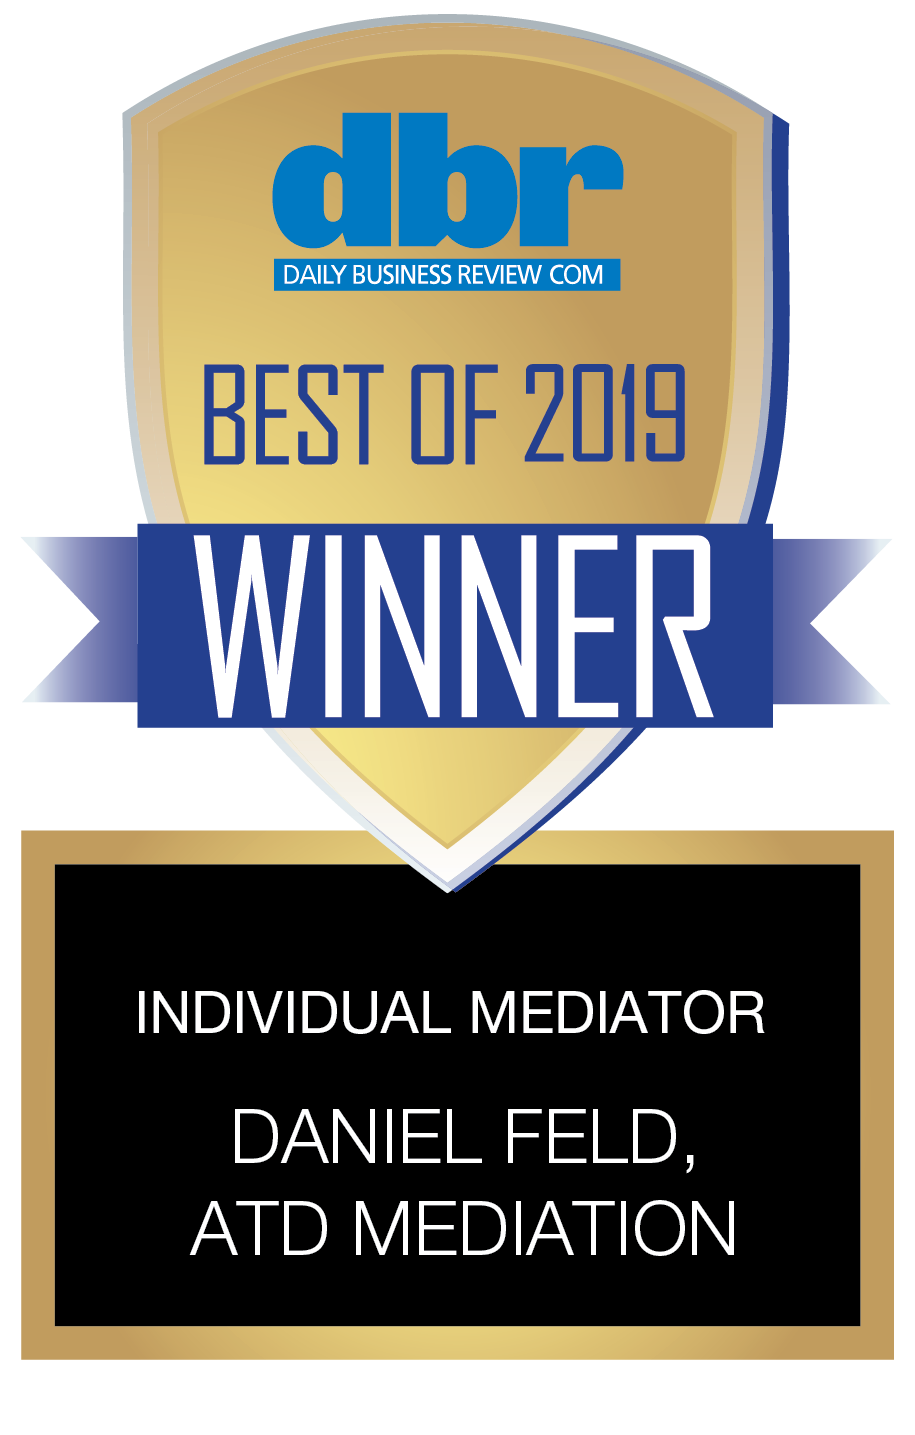 Individual Mediator Daniel Field ATD MEDIATION 2019 WINNER